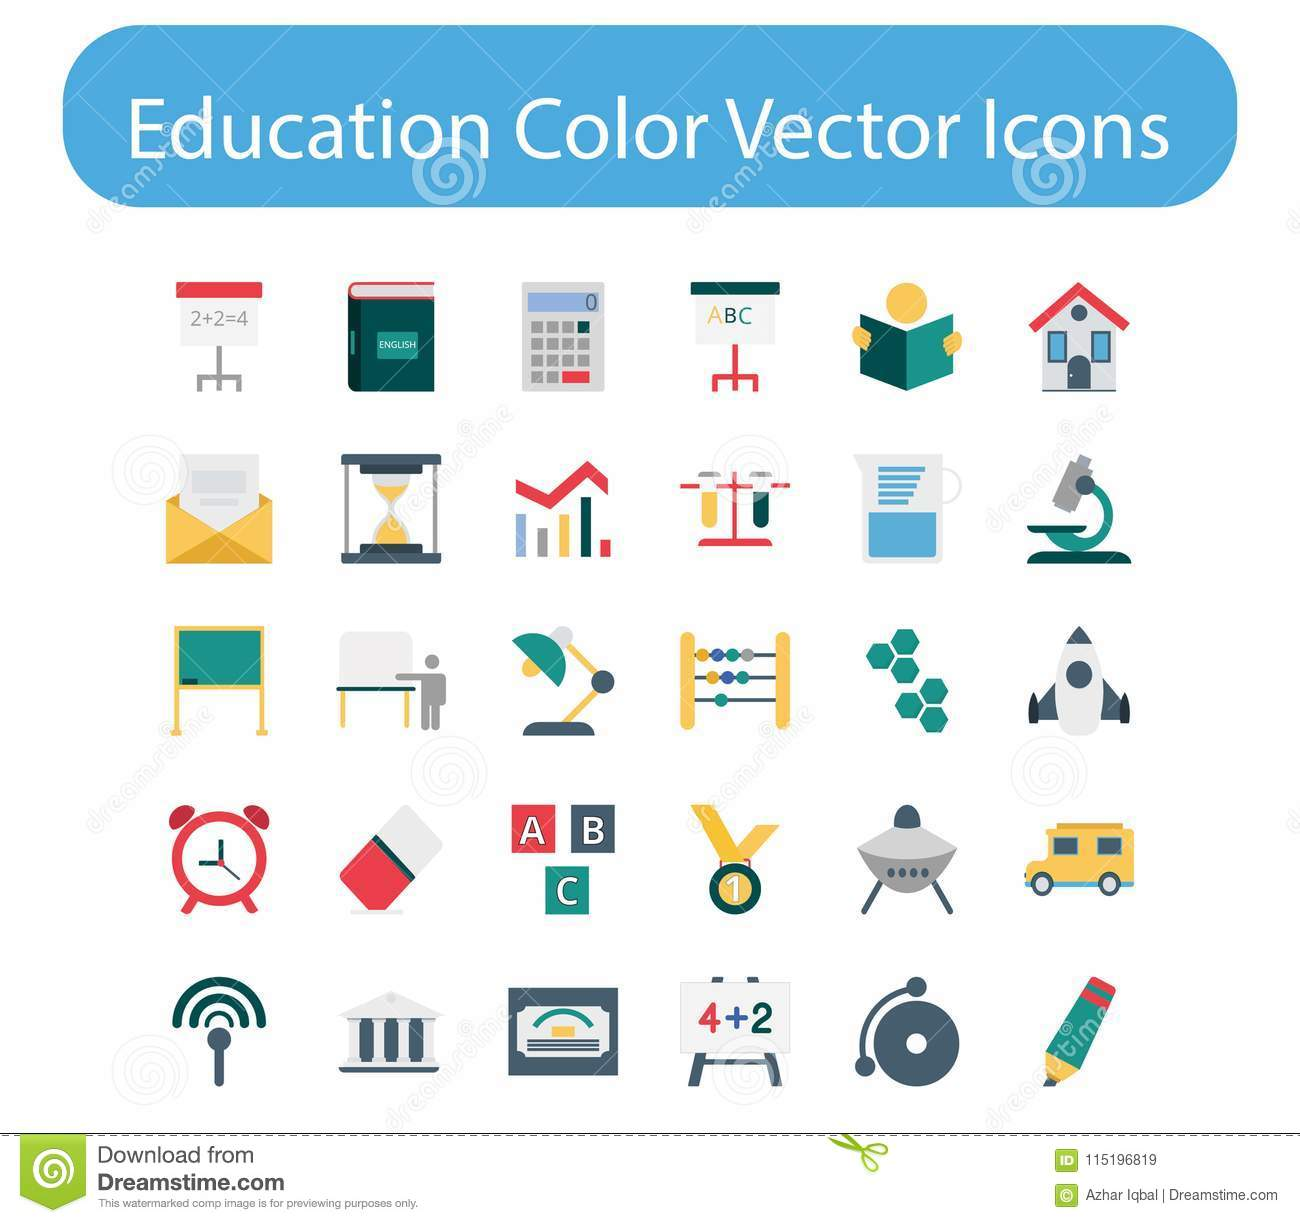 Education Color Vector Icon Pack